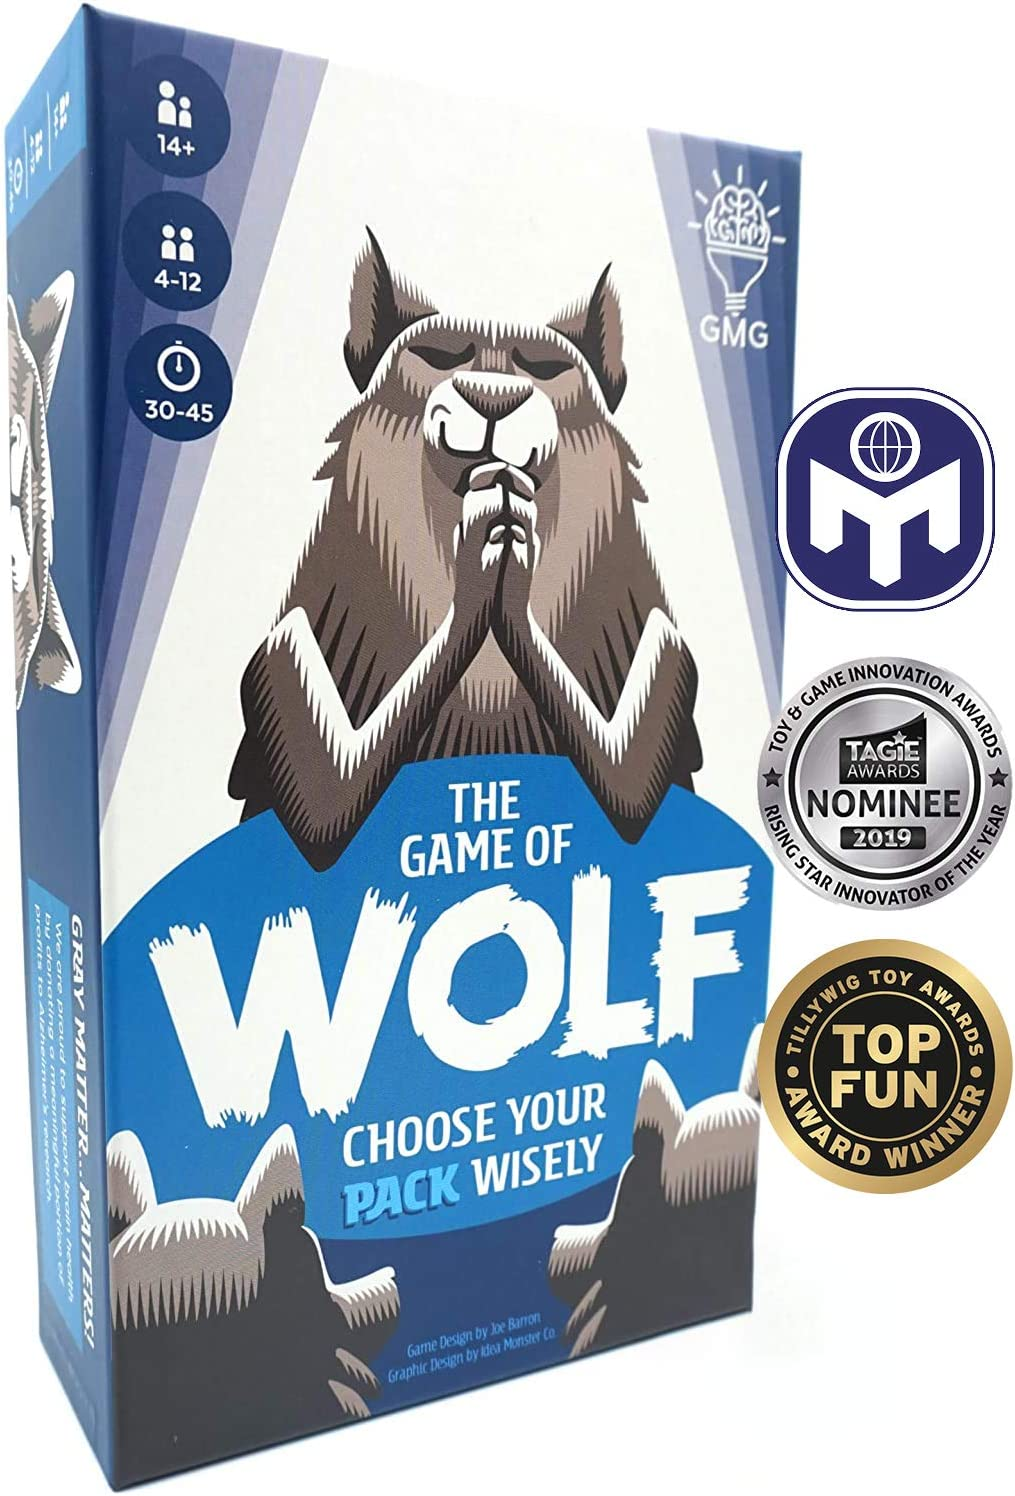 Wolf betting game crypto currency launches